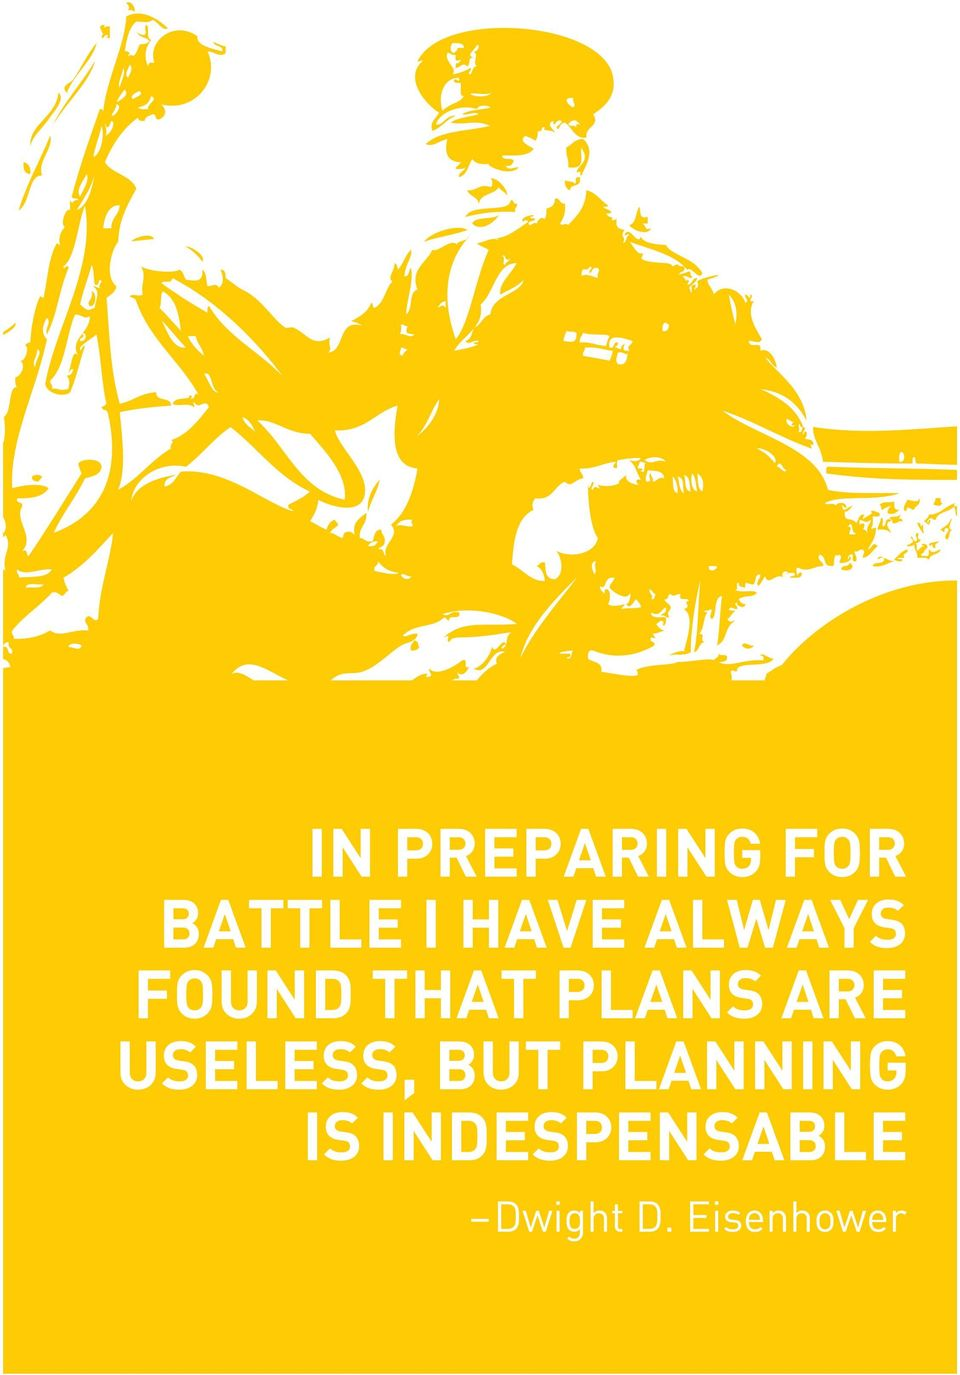 ARE USELESS, BUT PLANNING IS